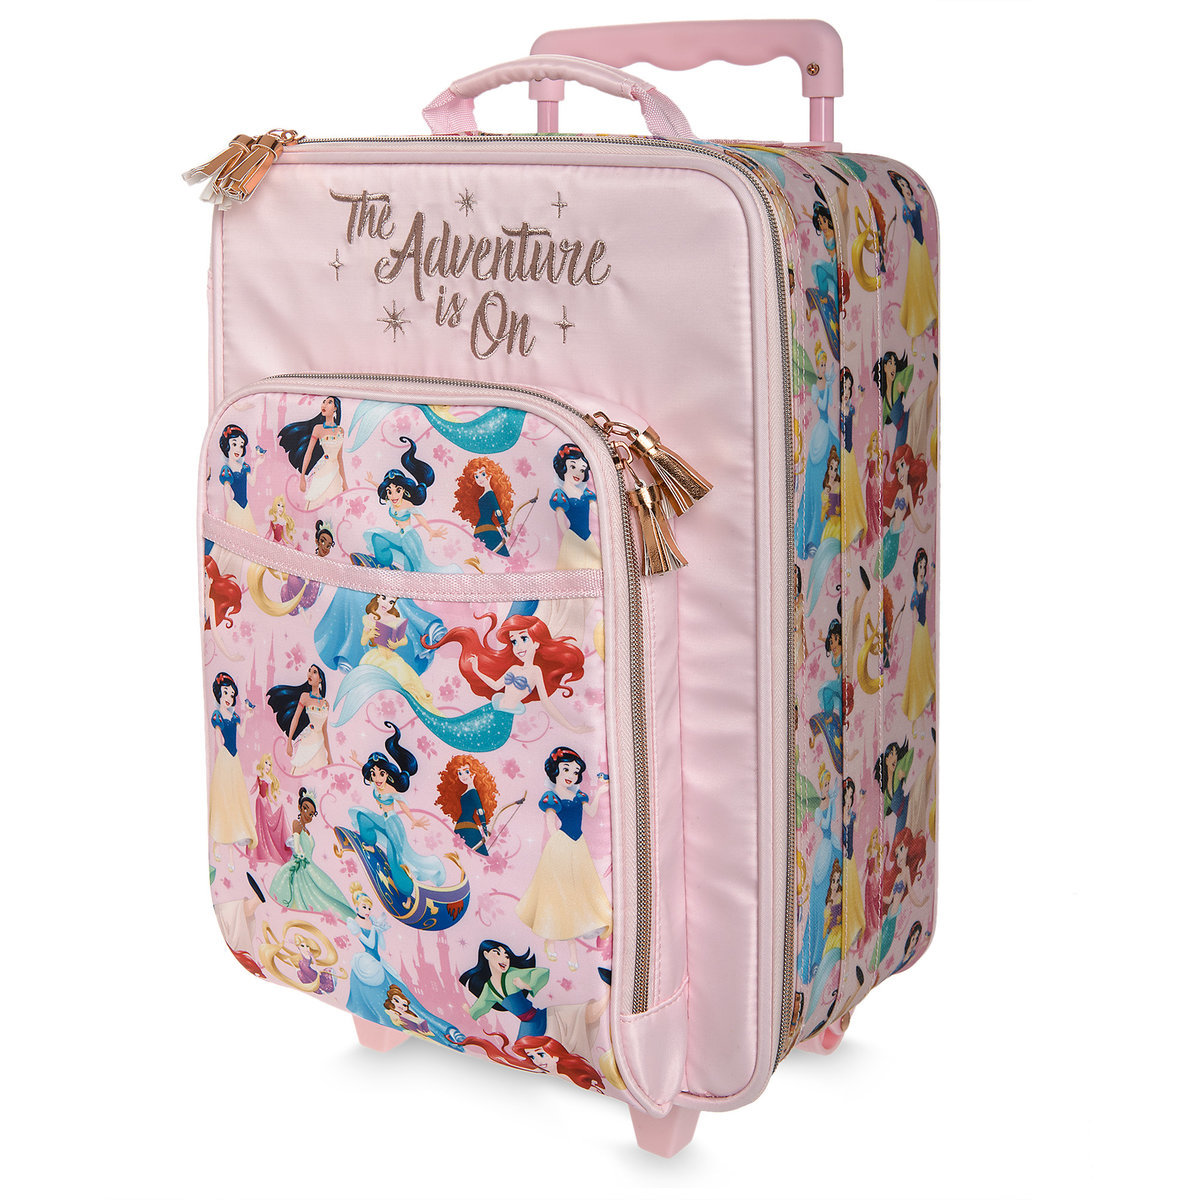 d23638f00d8 Product Image of Disney Princess Rolling Luggage   1